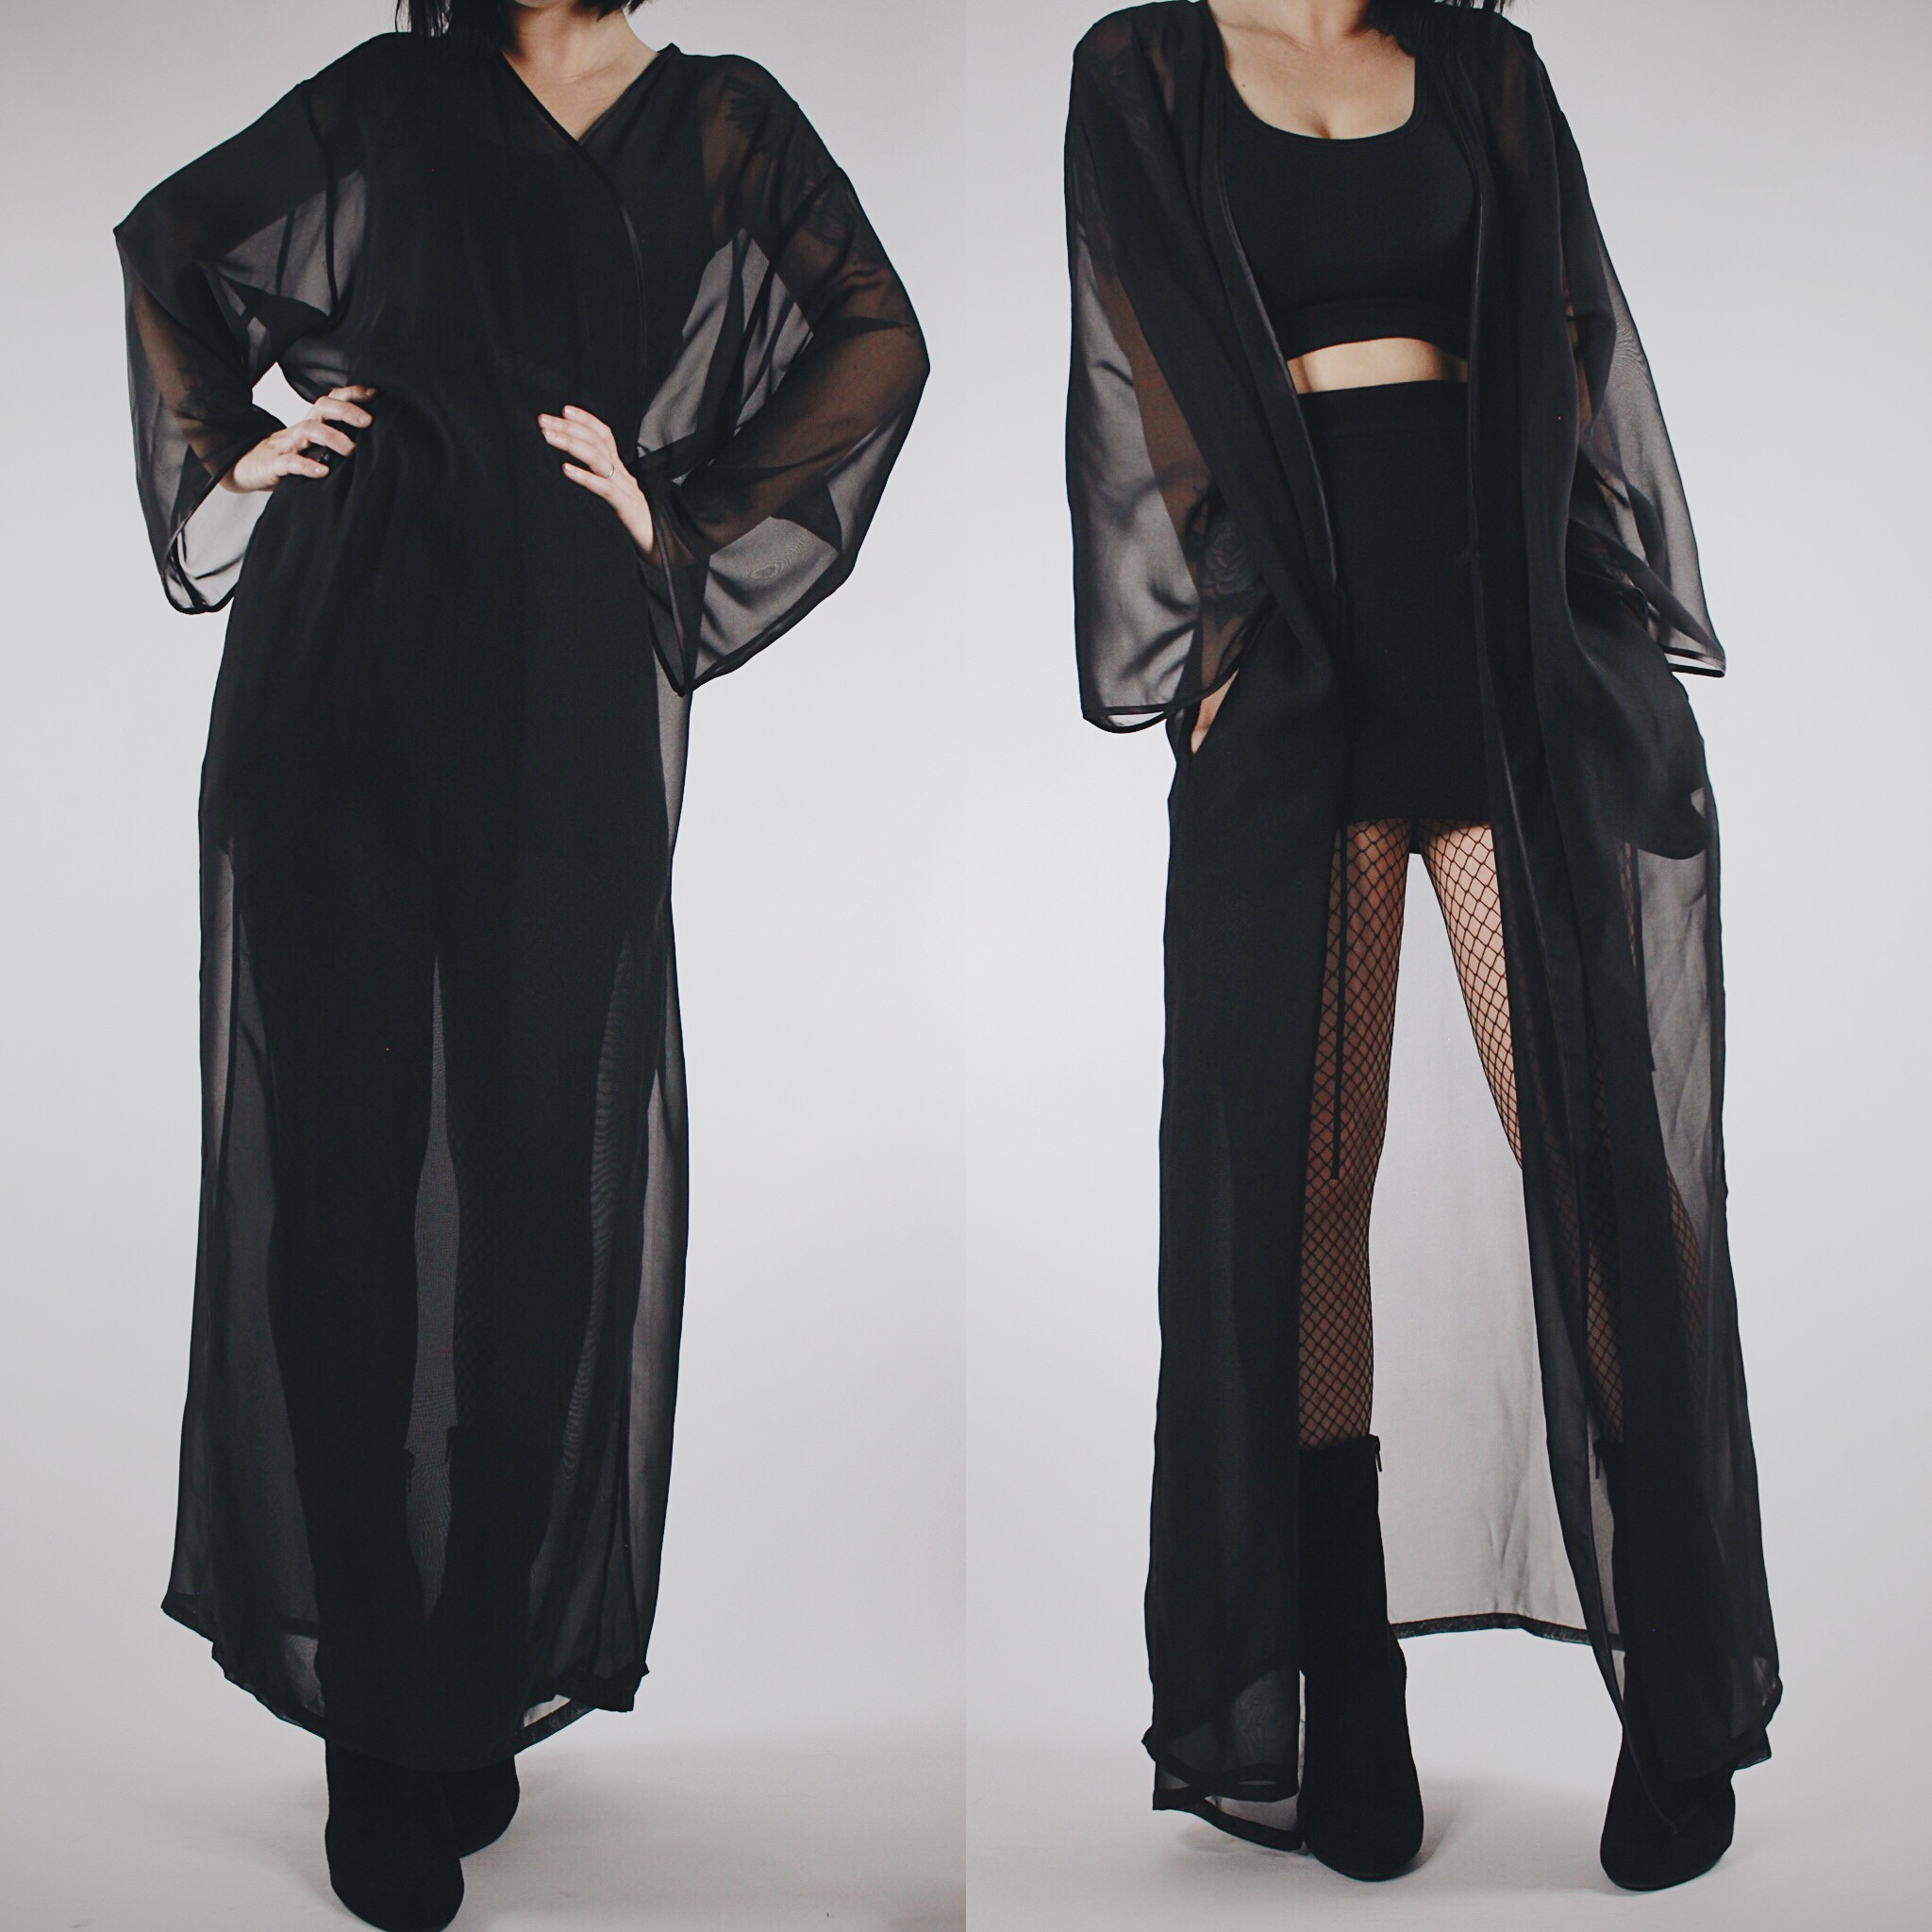 9aee51f29150 ... CLAIMED @skully_mean - Vintage 80s Black Sheer Flowy Multi-Way Dressing  Gown - Thumbnail ...